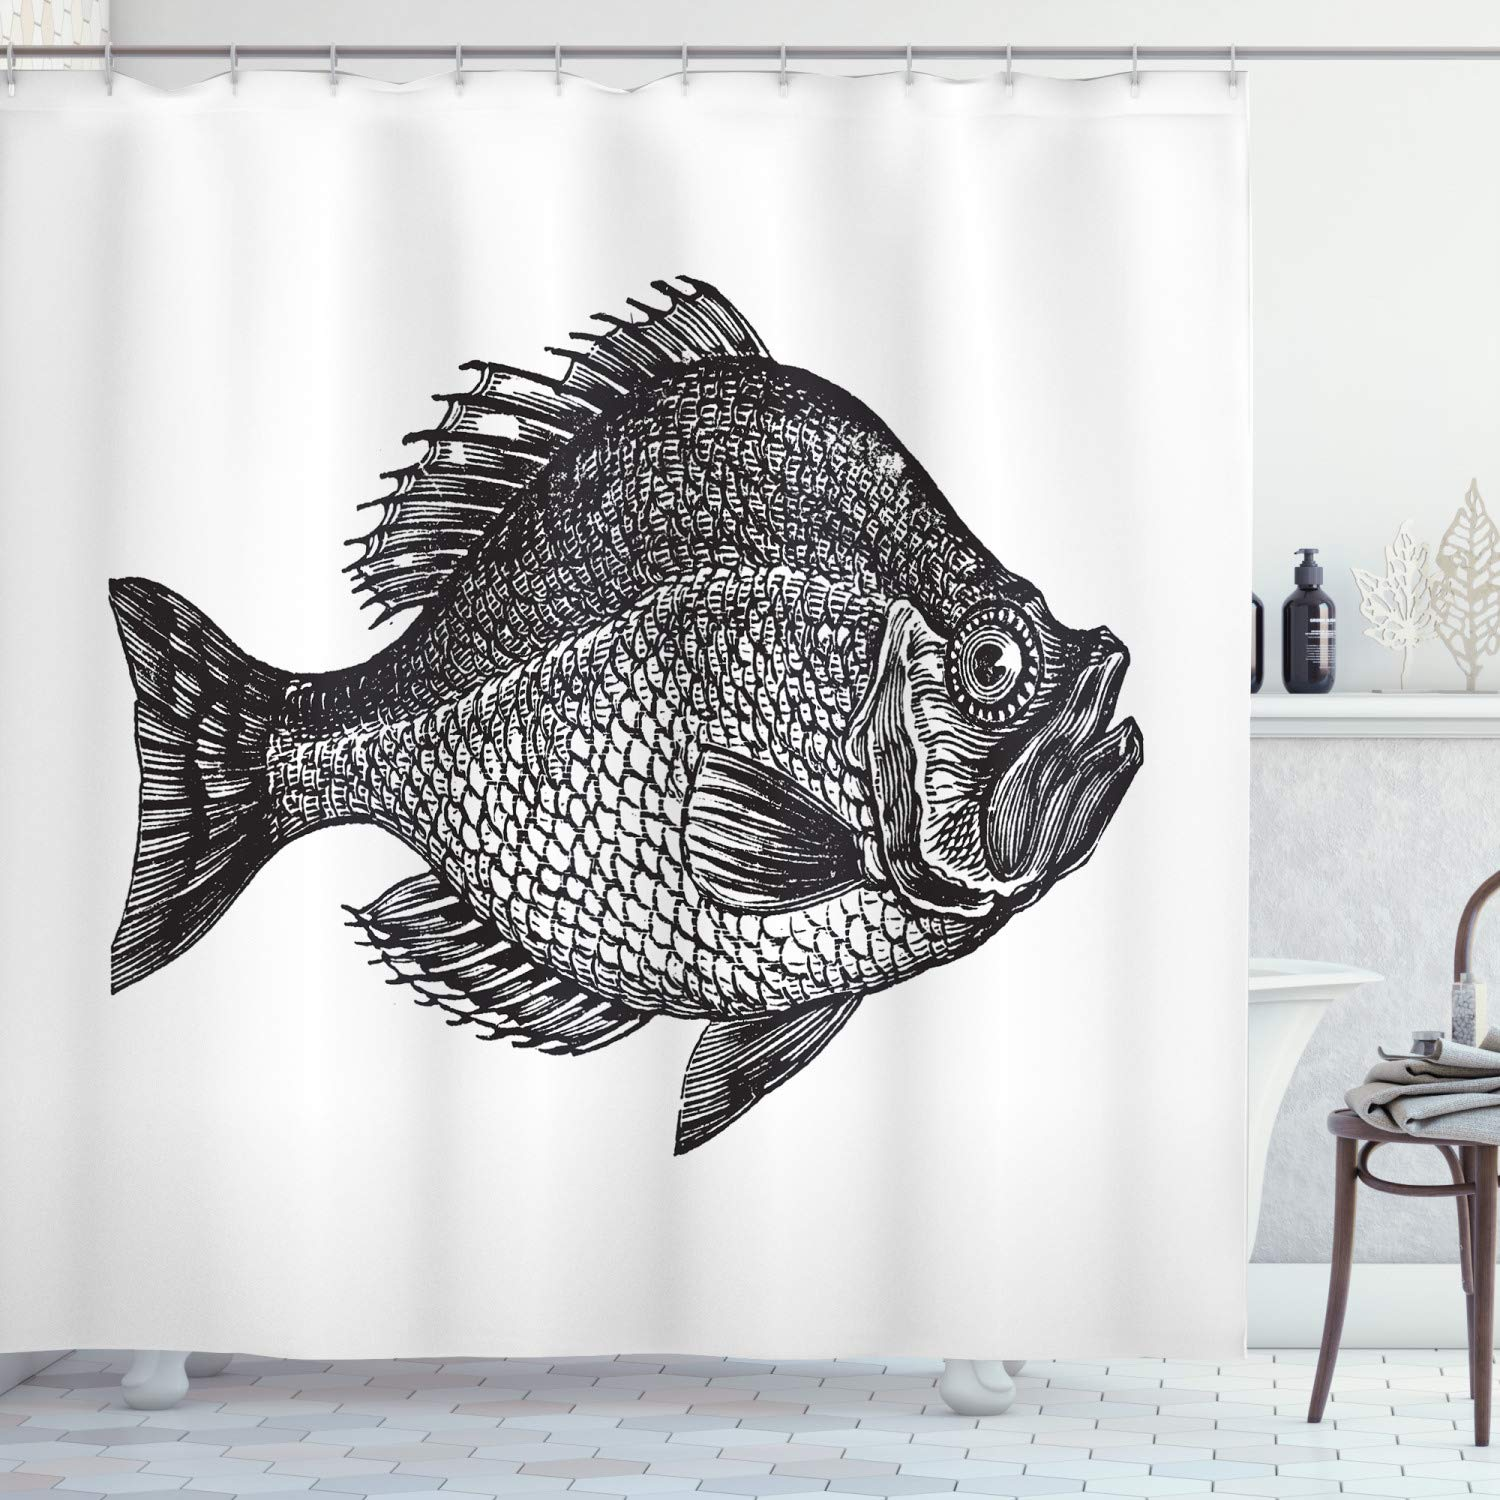 Ambesonne Fish Shower Curtain Vintage Design Rock Bass Fish Hand Drawn In Black And White Aquatic Image Cloth Fabric Bathroom Decor Set With Hooks 70 Long Grey White